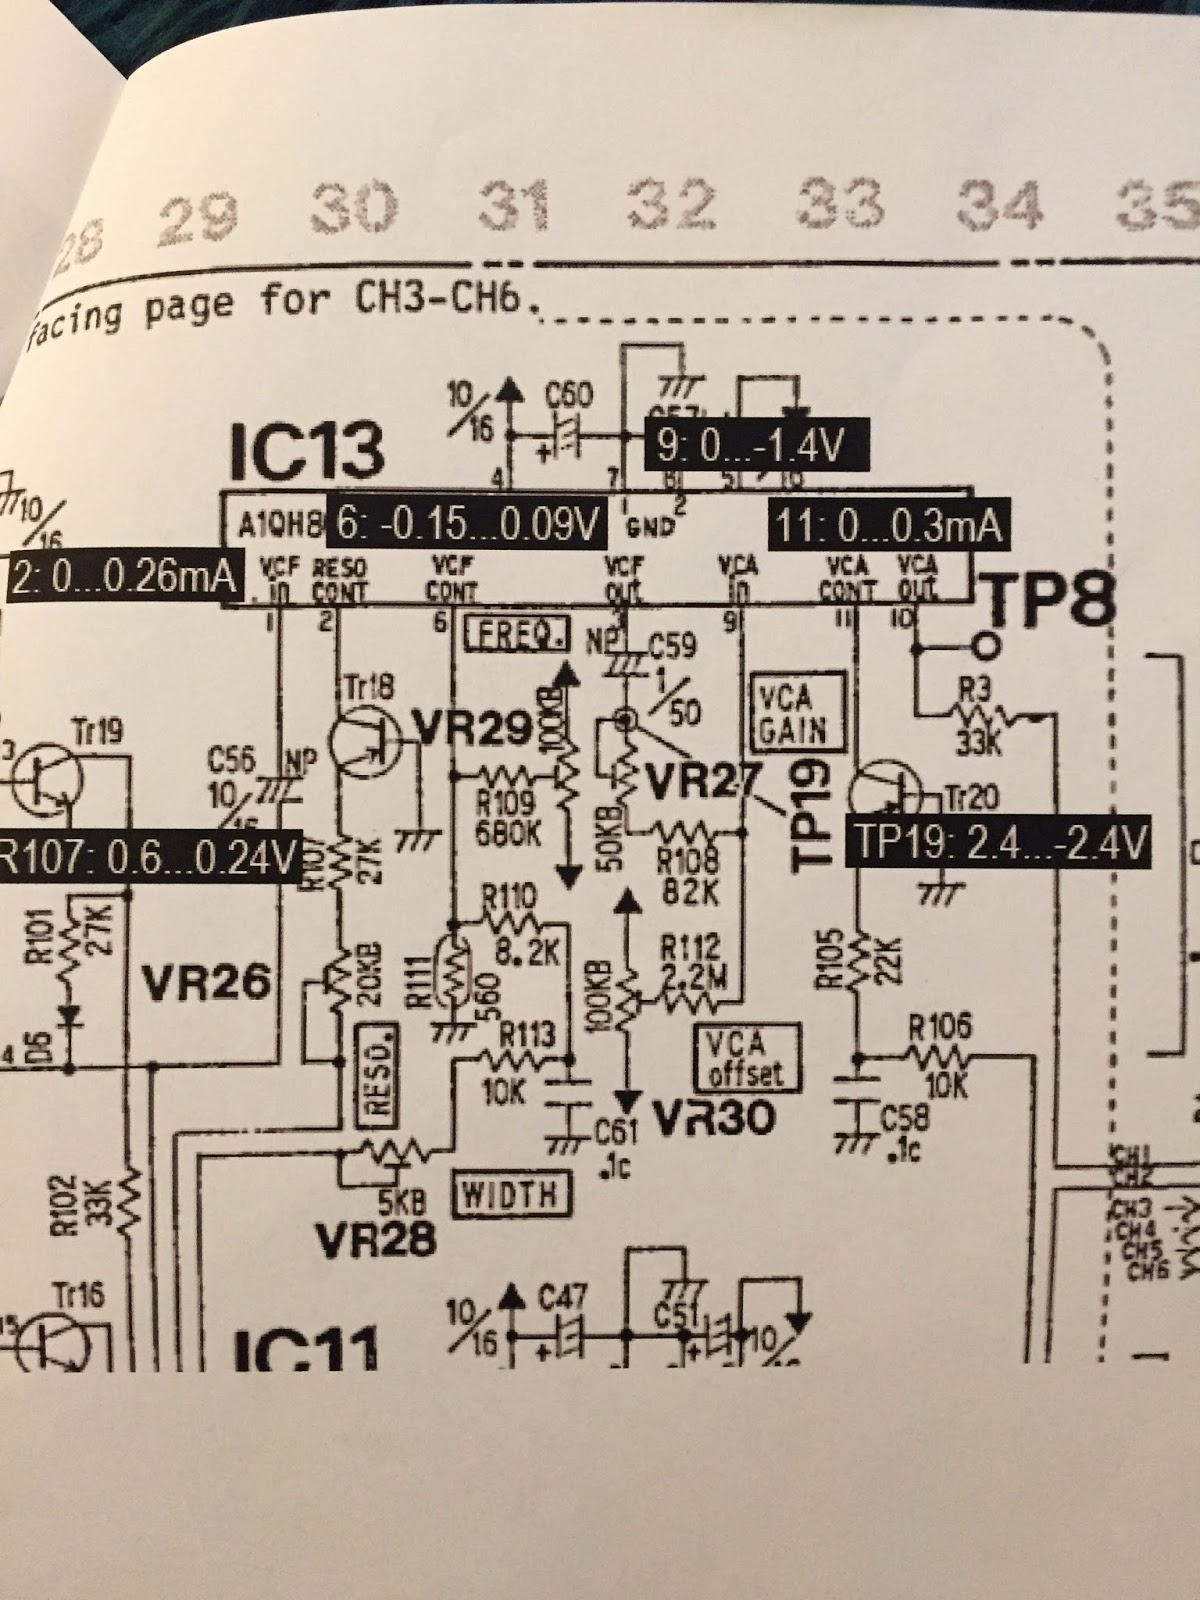 small resolution of an annotated juno 106 service manual showing the various voltages i can t quite remember where i got it but i think analogue renaissance made it